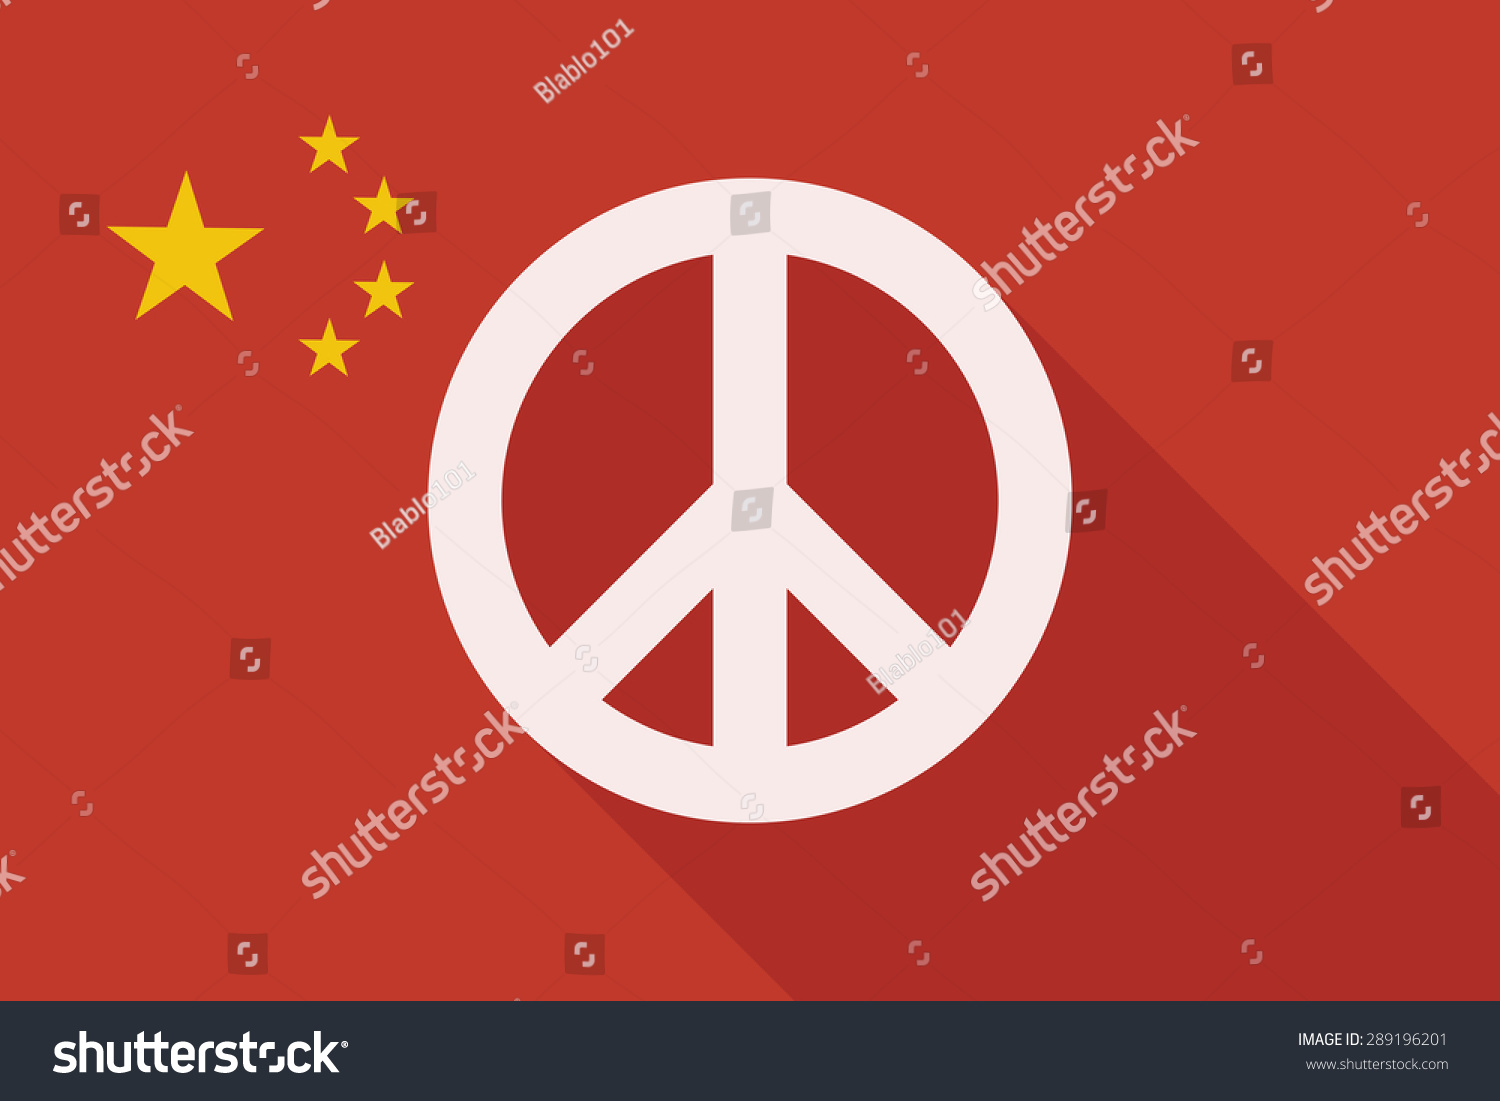 Illustration china long shadow flag peace stock vector 289196201 illustration of a china long shadow flag with a peace sign biocorpaavc